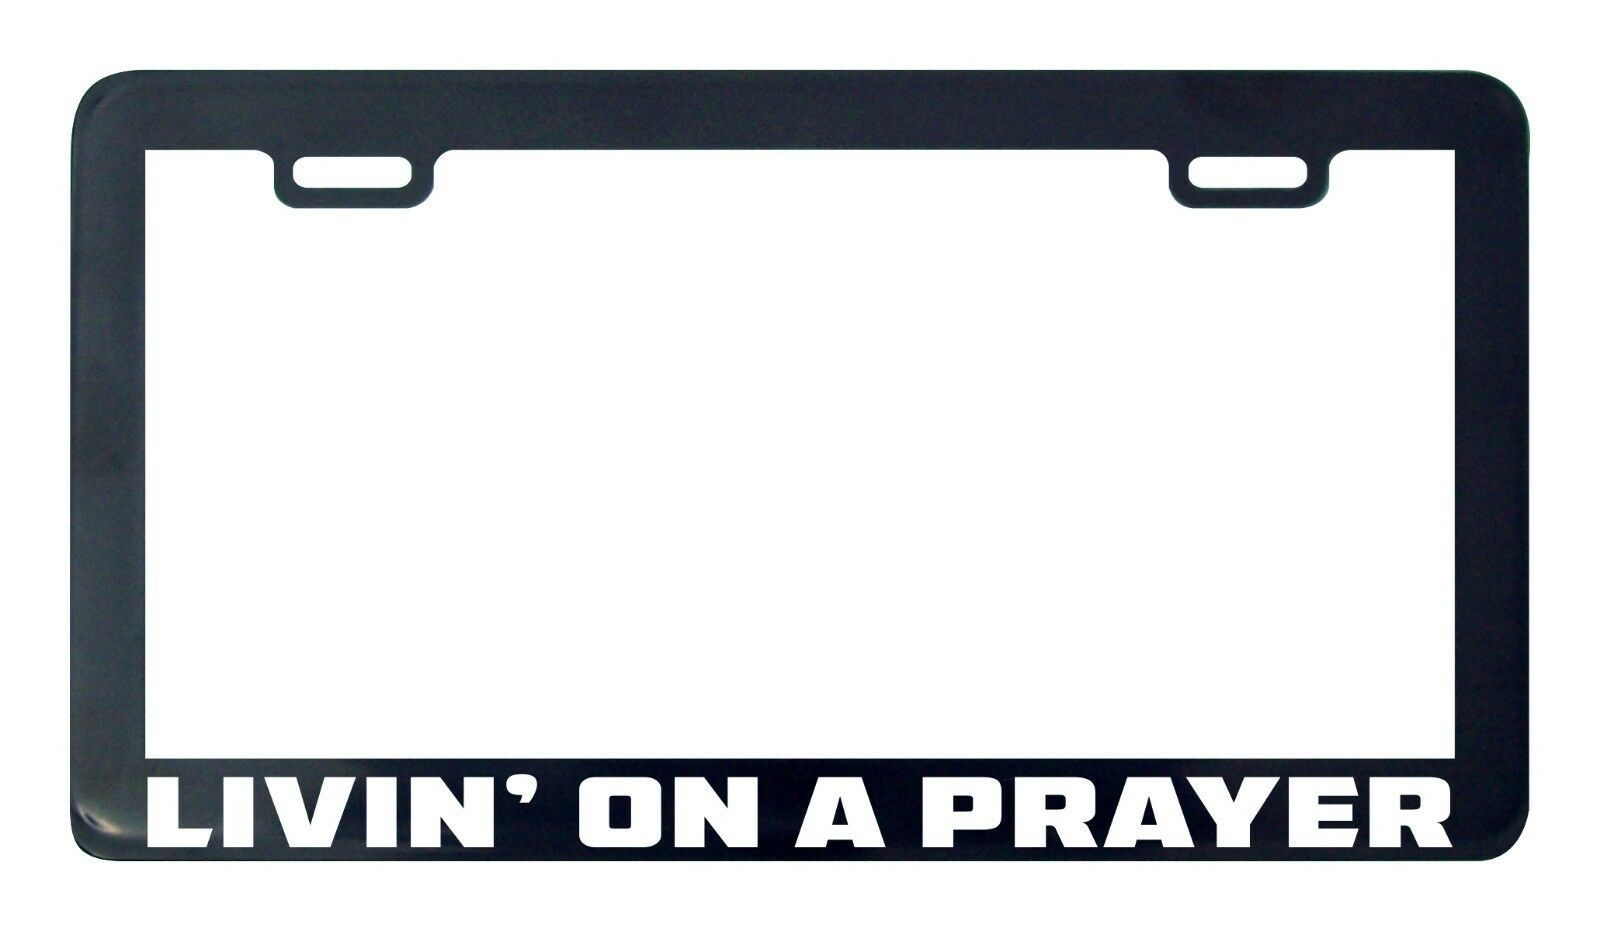 Primary image for Livin' living on a prayer funny license plate frame tag holder